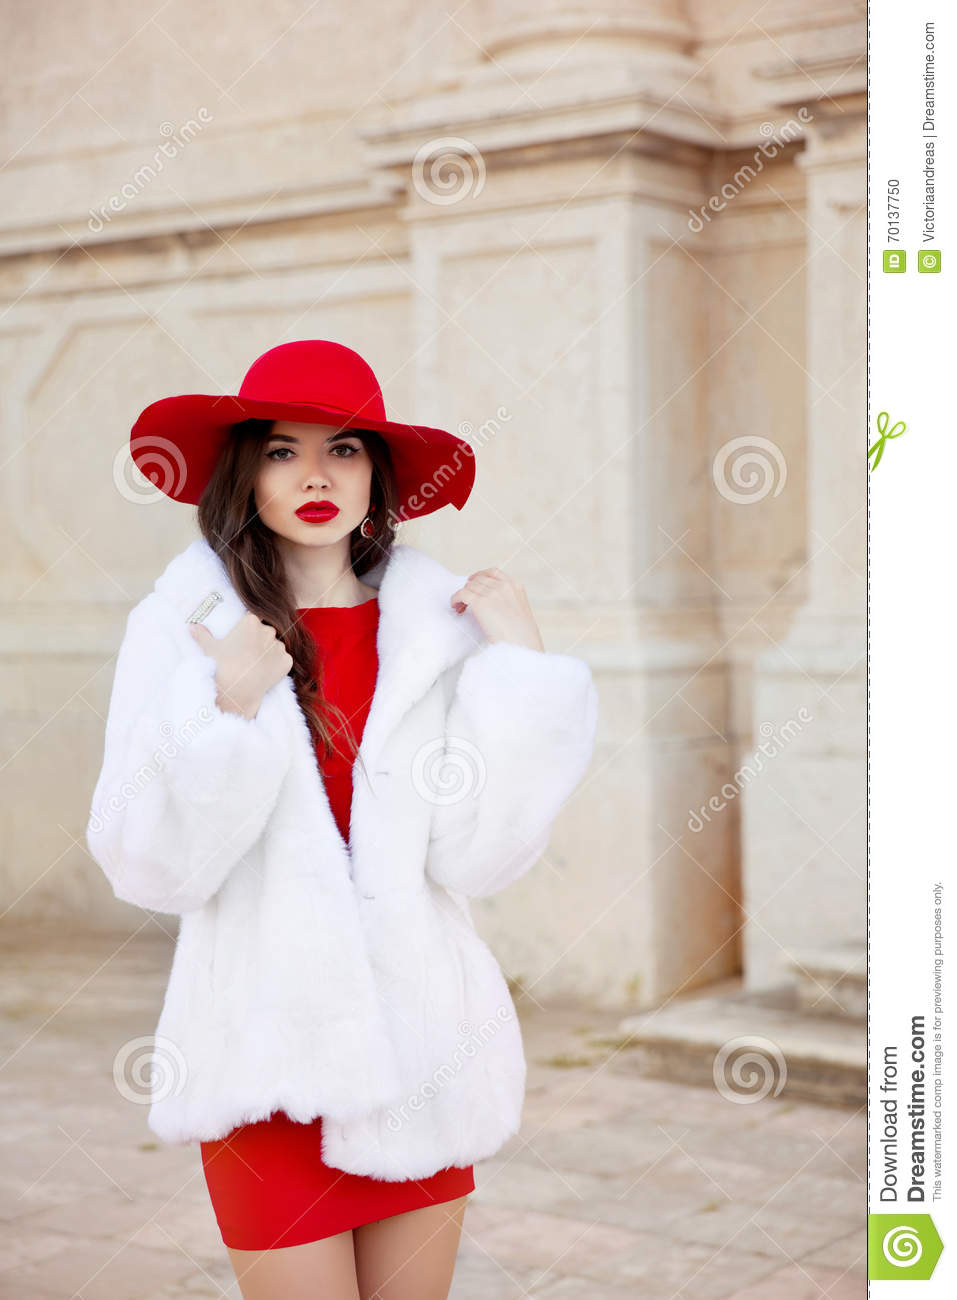 Fashion Woman In Red Hat And Dress Wearing White Fur Coat. Elega ...